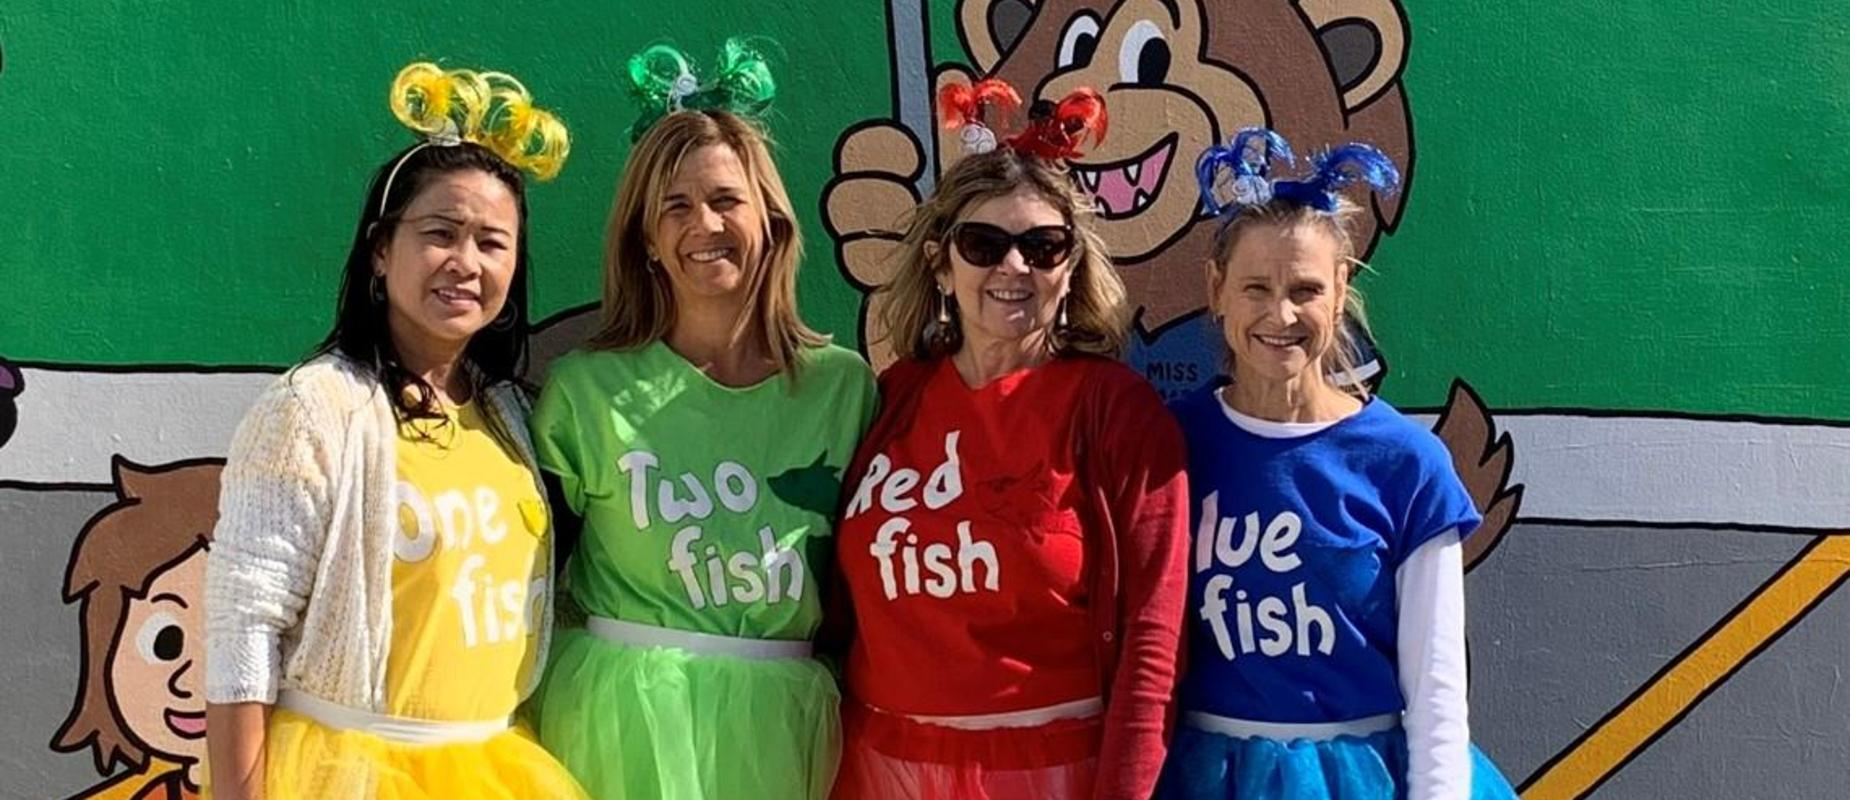 TEACHERS DRESSED UP AS FISH FROM DR.SEUSS BOOK